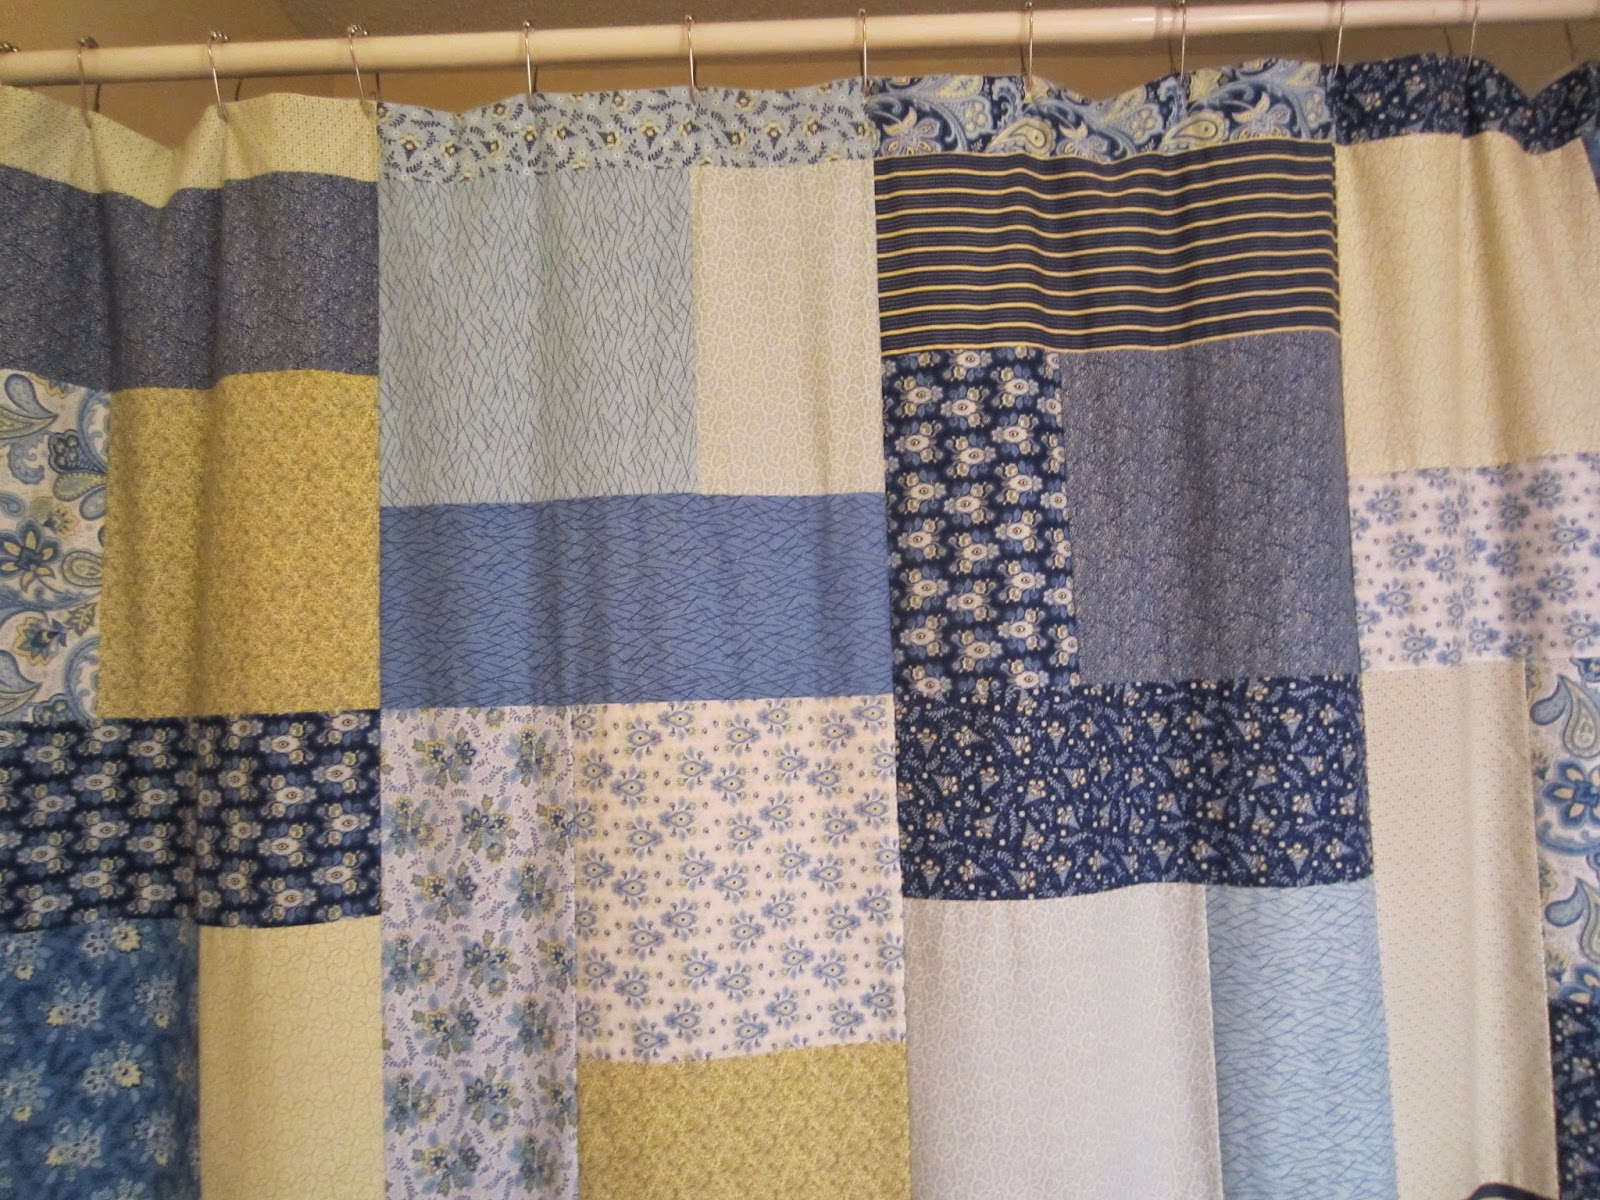 Shower curtain quilt pattern - Attaching The Hangers And The Shower Curtain Was Finished